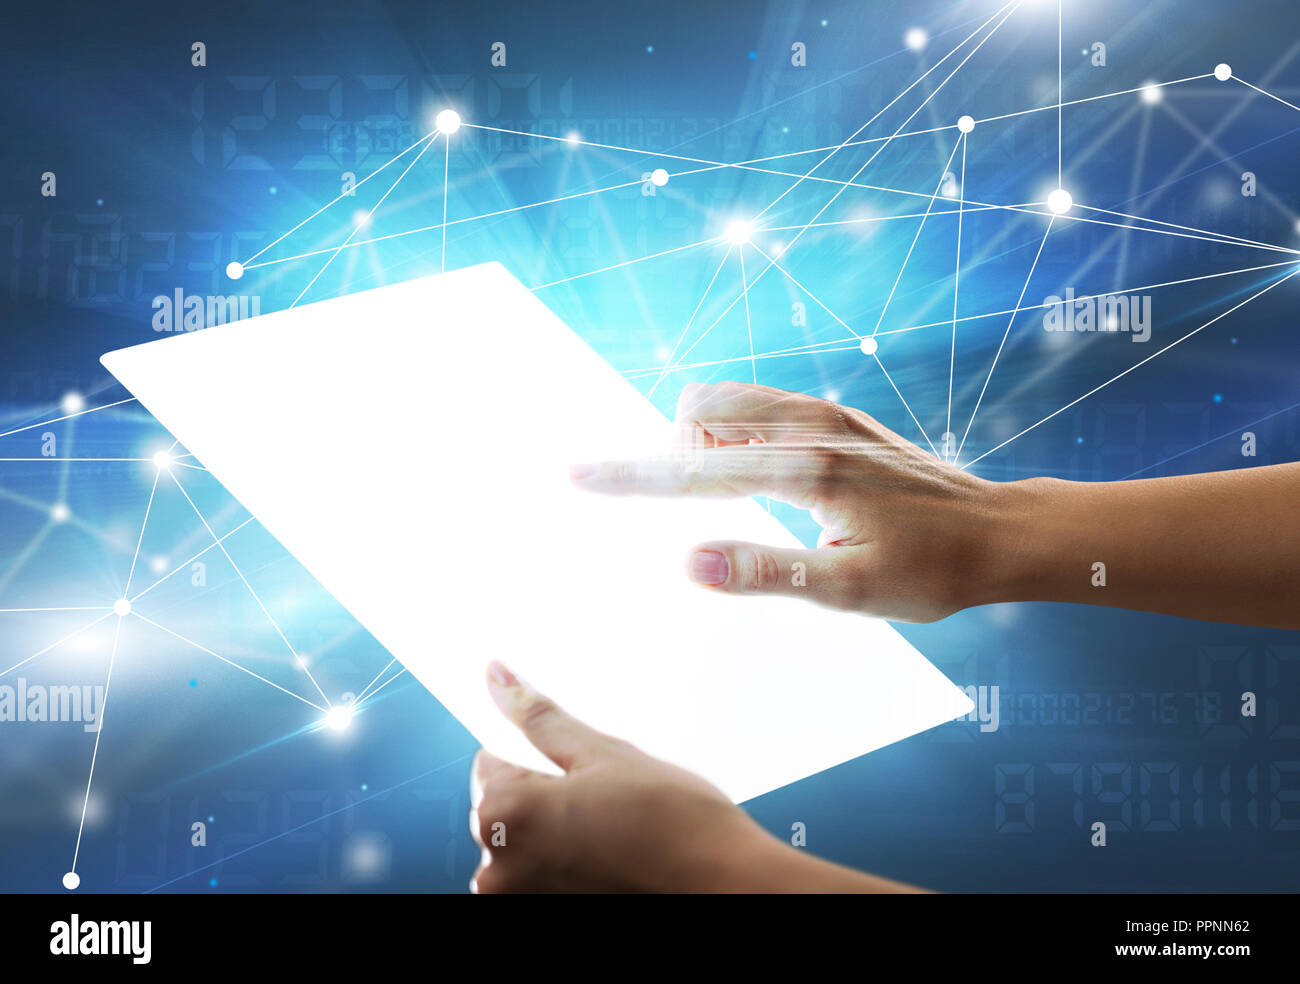 Young female hand holding a tablet with numbers in the background - Stock Image